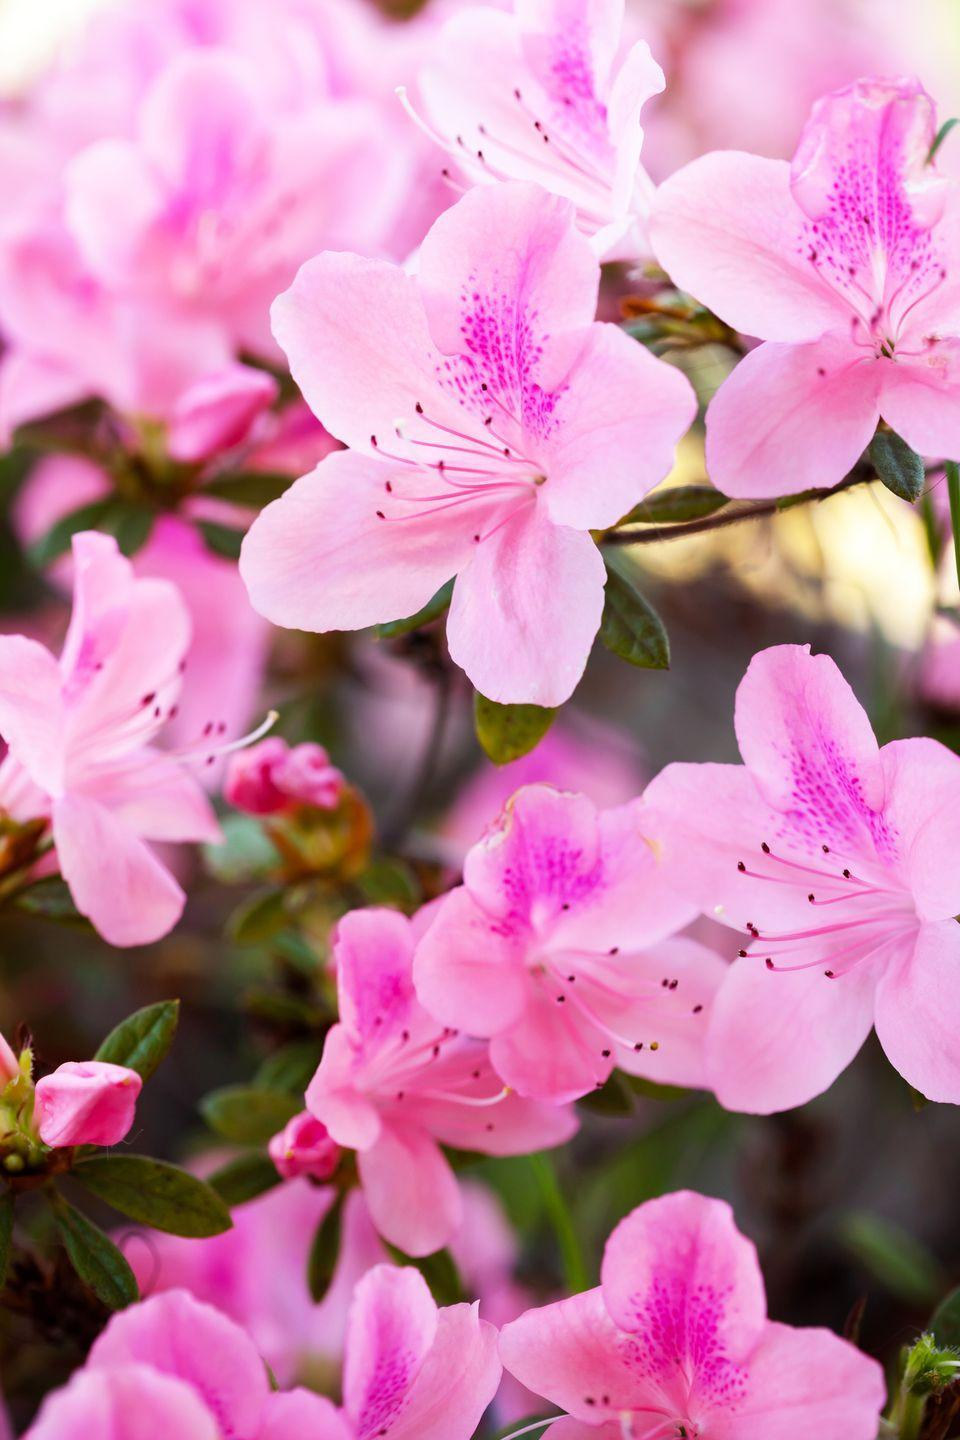 "<p>Most azaleas have lovely blooms that appear in mid-spring. New re-blooming varieties stay around 3 feet tall and bloom again and again throughout the season! Look for types such as Bloomerang and Perfecto Mundo. They typically do best with afternoon shade. </p><p><a class=""link rapid-noclick-resp"" href=""https://www.greatgardenplants.com/products/perfecto-mundo-double-pink-reblooming-azalea?variant=37358171652263"" rel=""nofollow noopener"" target=""_blank"" data-ylk=""slk:SHOP NOW"">SHOP NOW</a></p>"